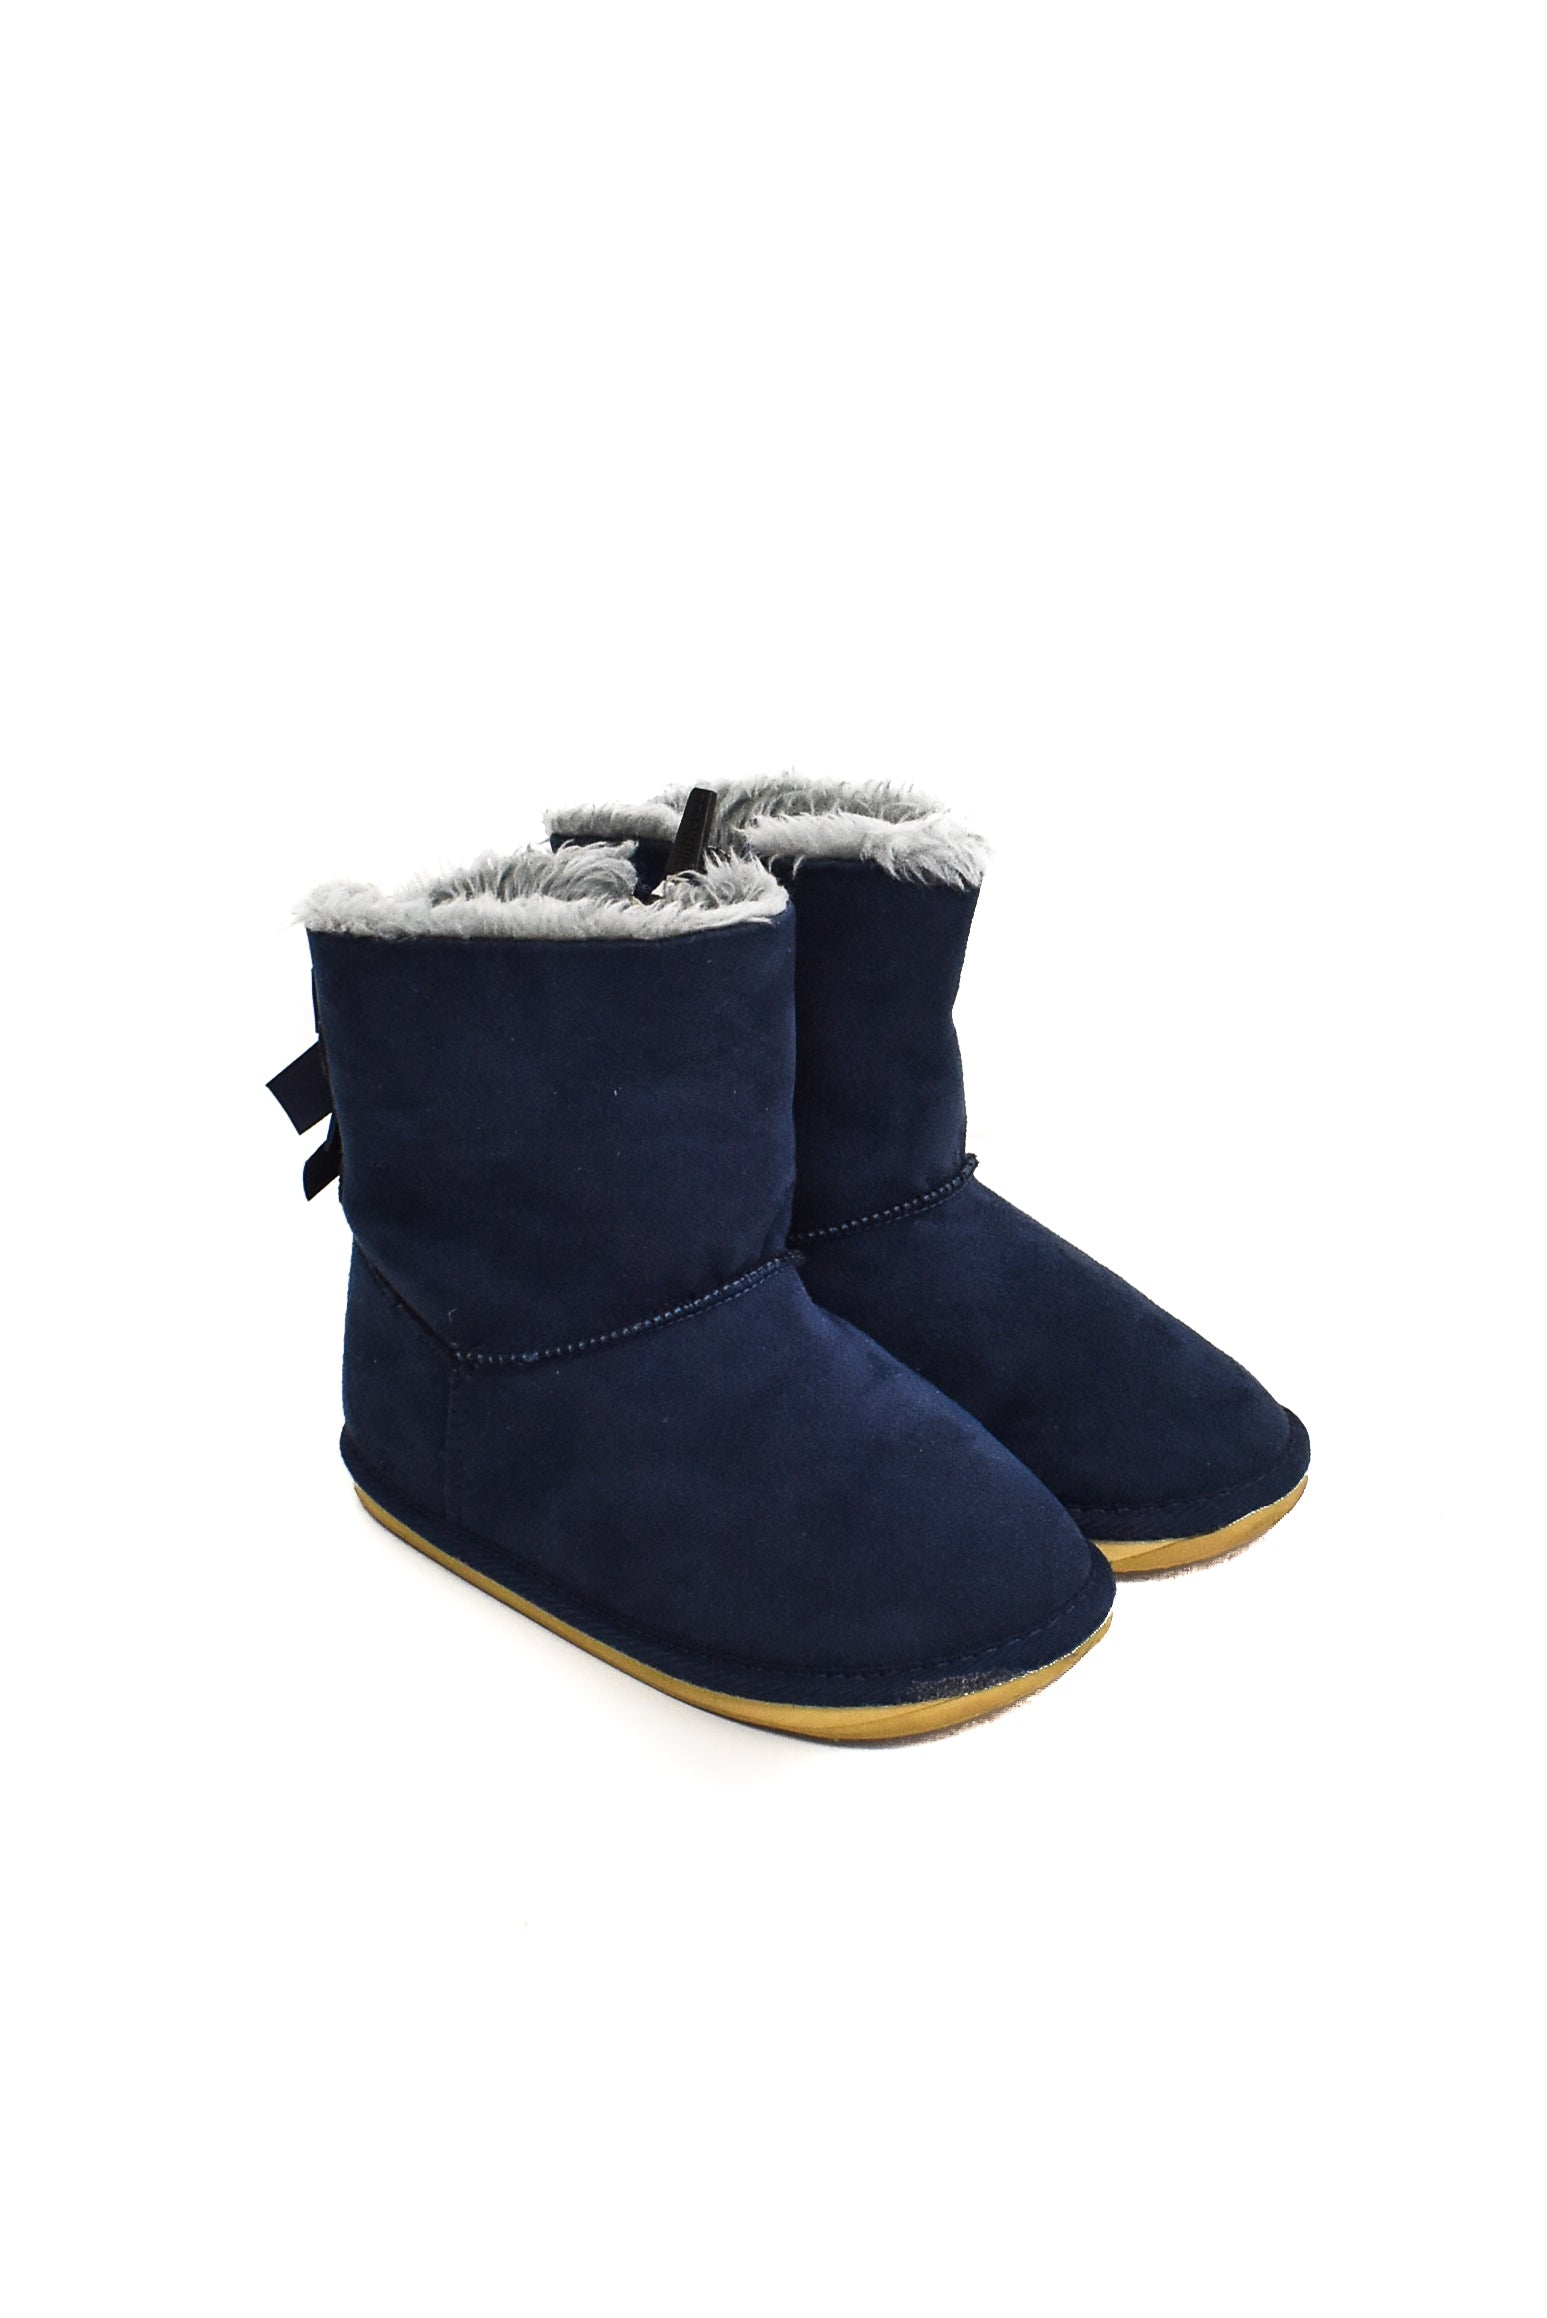 10007682 Miki House Kids ~  Boots 6T (EU 30) at Retykle